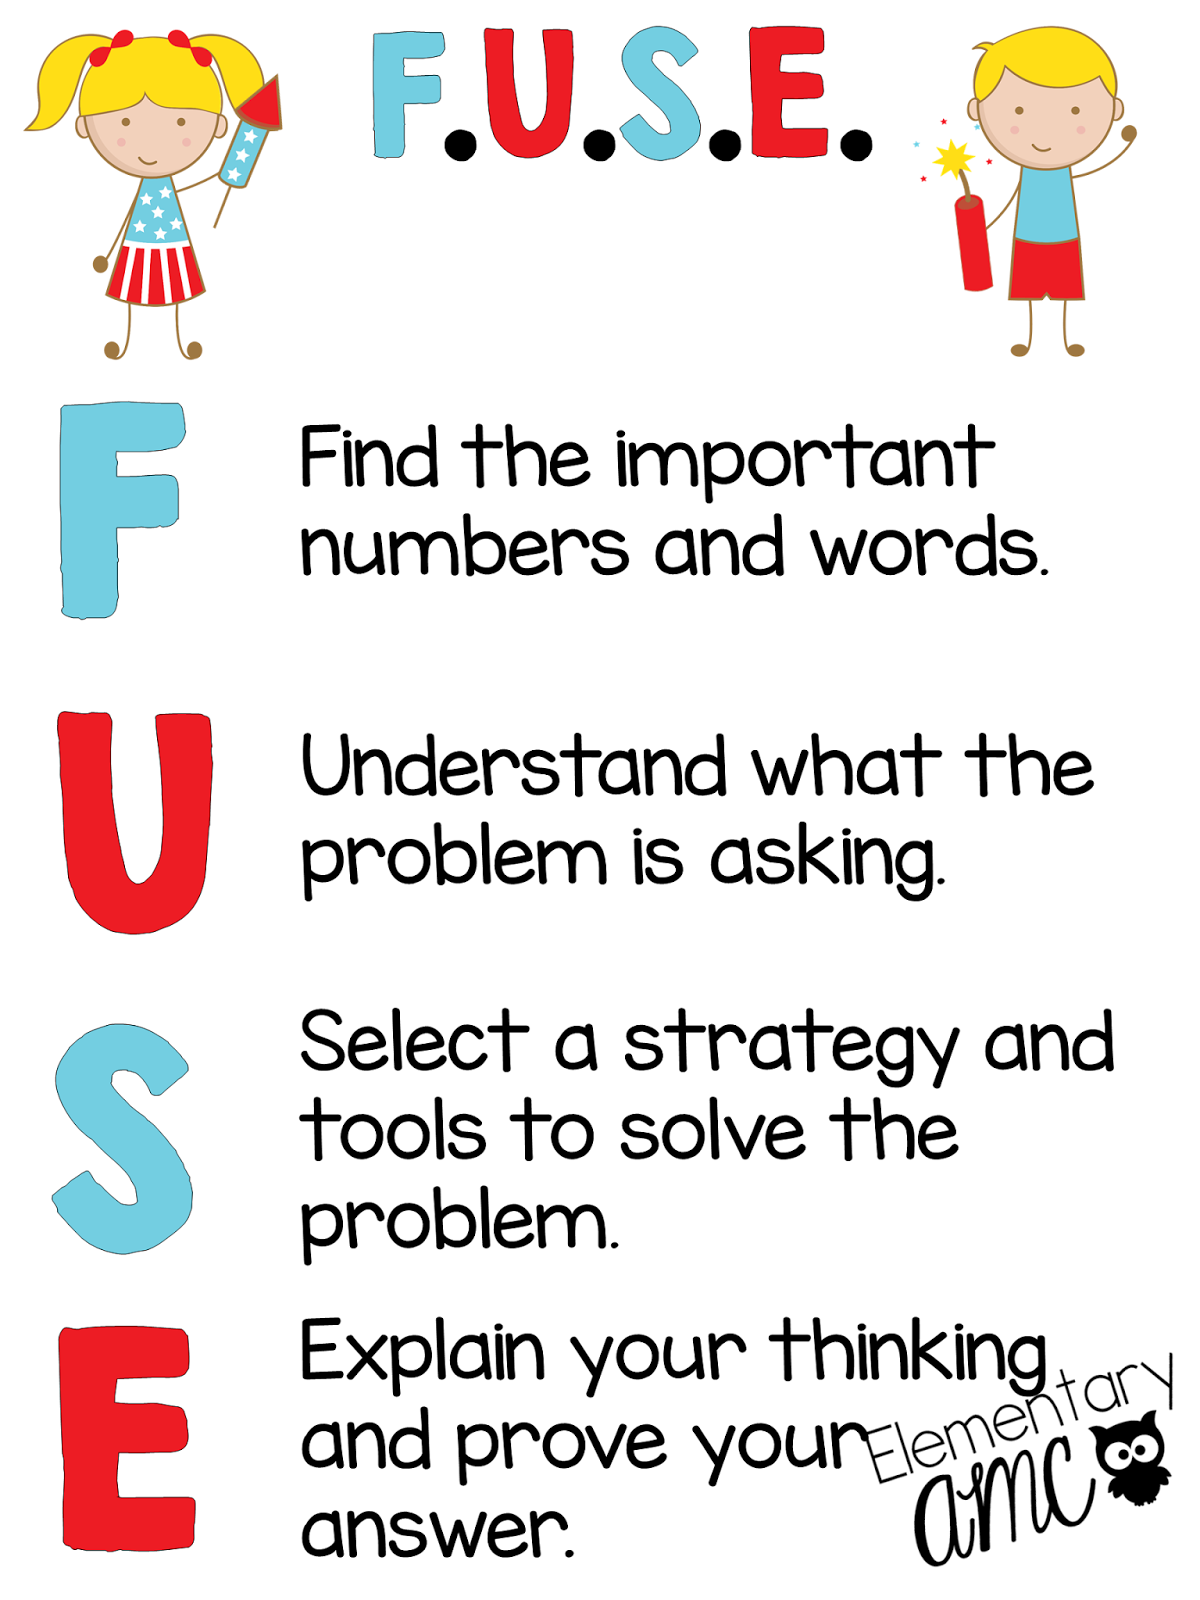 Steps For Fostering Independent Problem Solving Skills